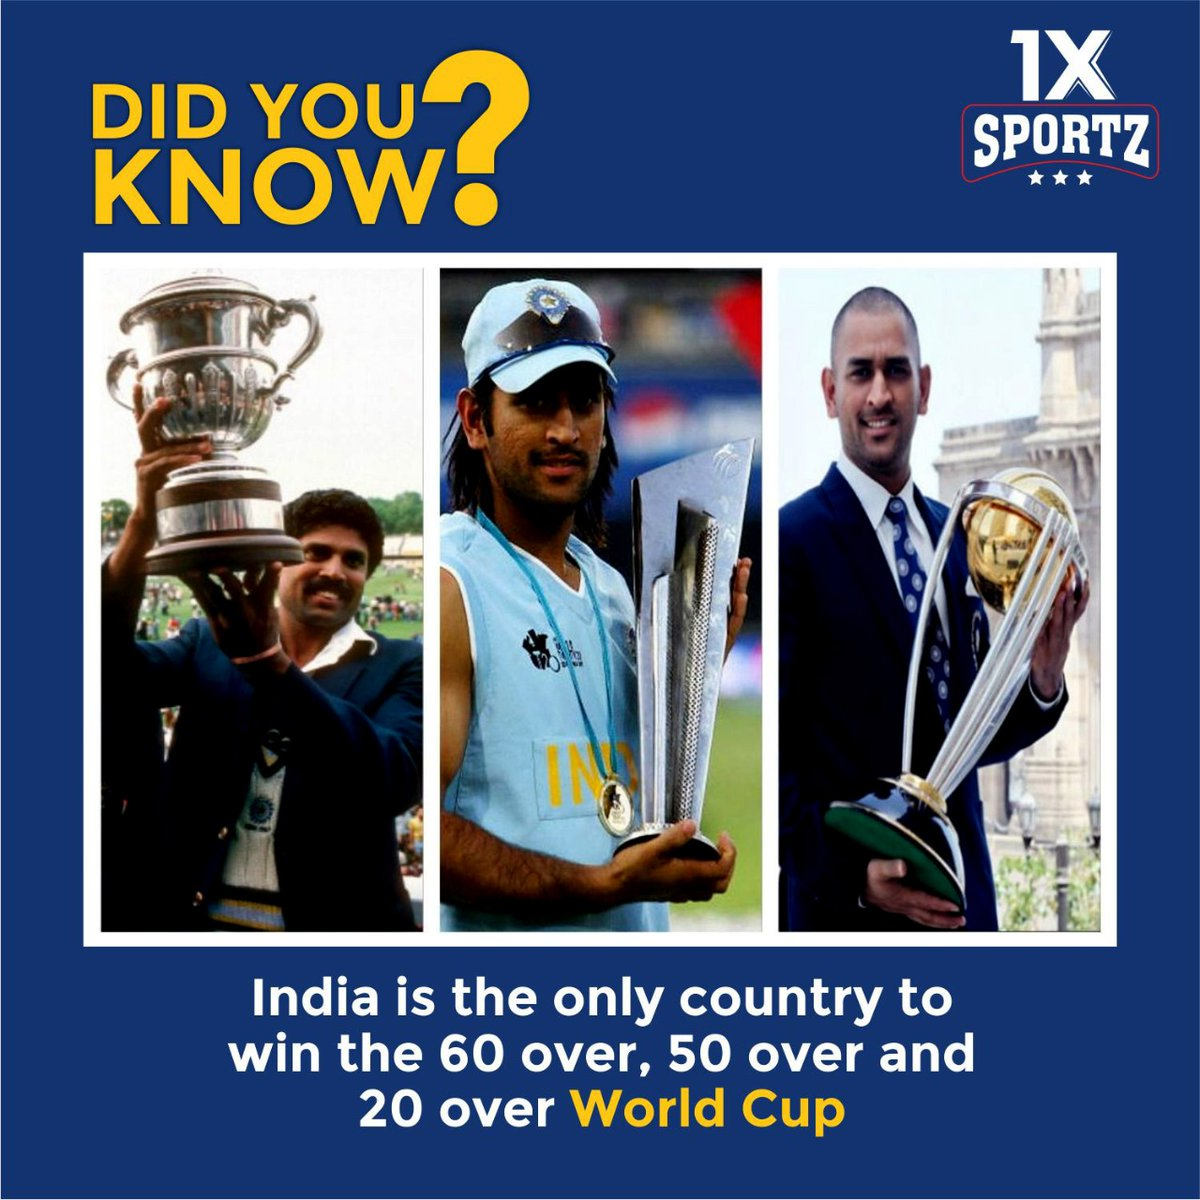 DID YOU KNOW ? India is the only country to win the 60 over, 50 over and 20 over World Cup  #didyouknow #1xsportz #IndianCricketTeam #TeamIndia #BackTheBlue #BleedBlue #IPLRetention #IPL2021 #IPL #IPL2021Auction